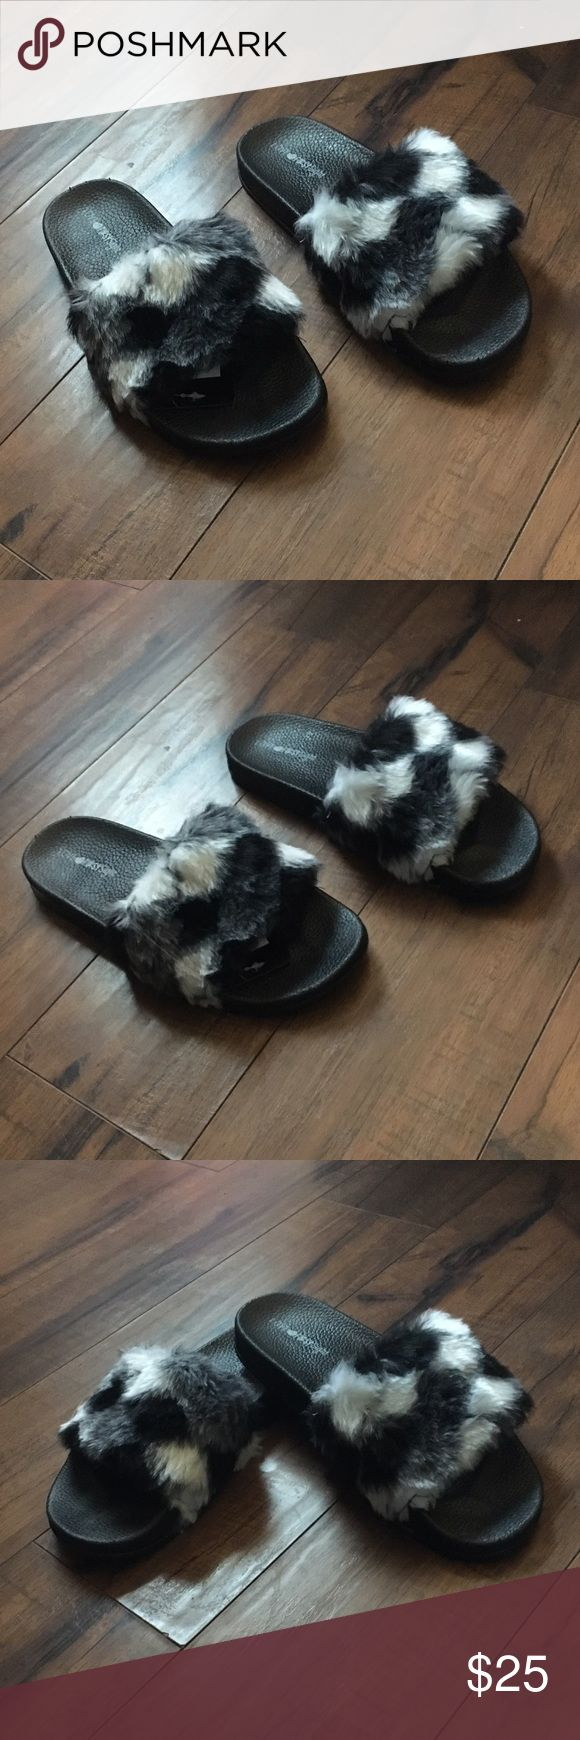 💥NEW💥Faux fur fuzzy slides, fuzzy, slippers Checkered furry sandals/ slippers slides.  New with tags, pristine condition!  These cute slides are so comfortable! The bottoms are made of a hard felt.  Size 9, true to size       💋 Check out more shoes/ sandals in my closet 💋               💥 To Post Office same/ next day 💥 Shoes Slippers